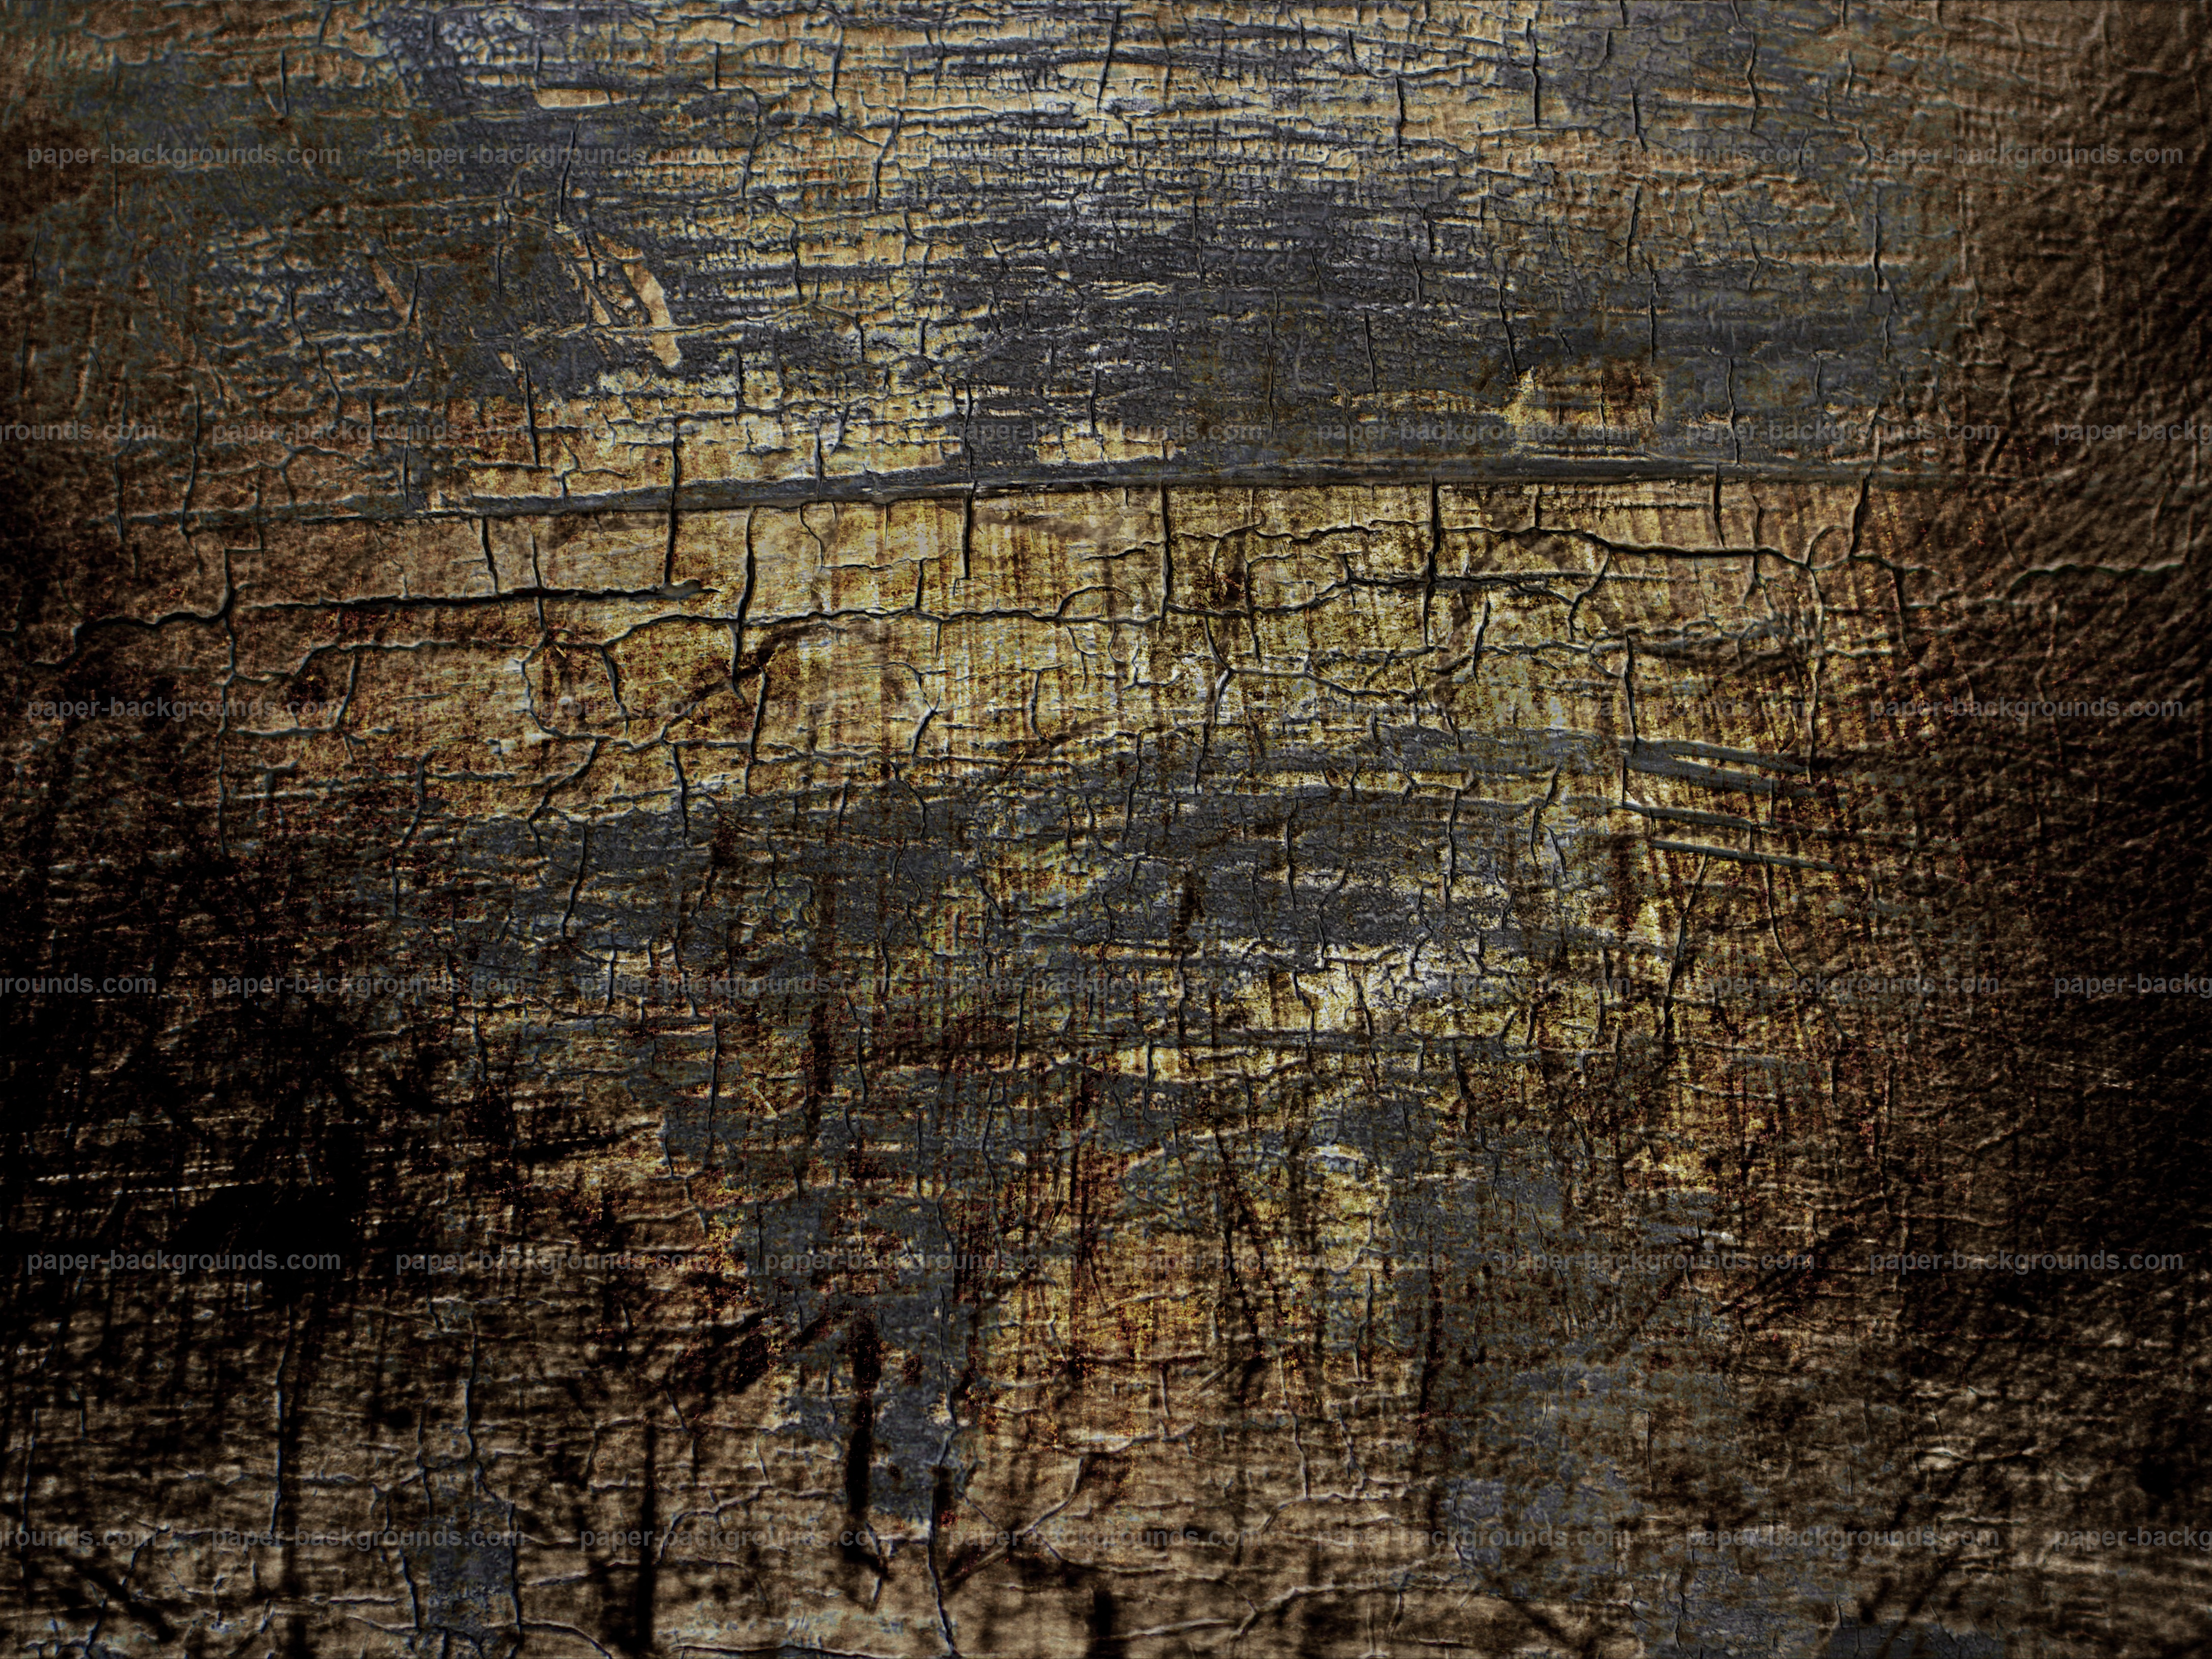 Paper backgrounds grunge rusty background texture for Textures and backgrounds